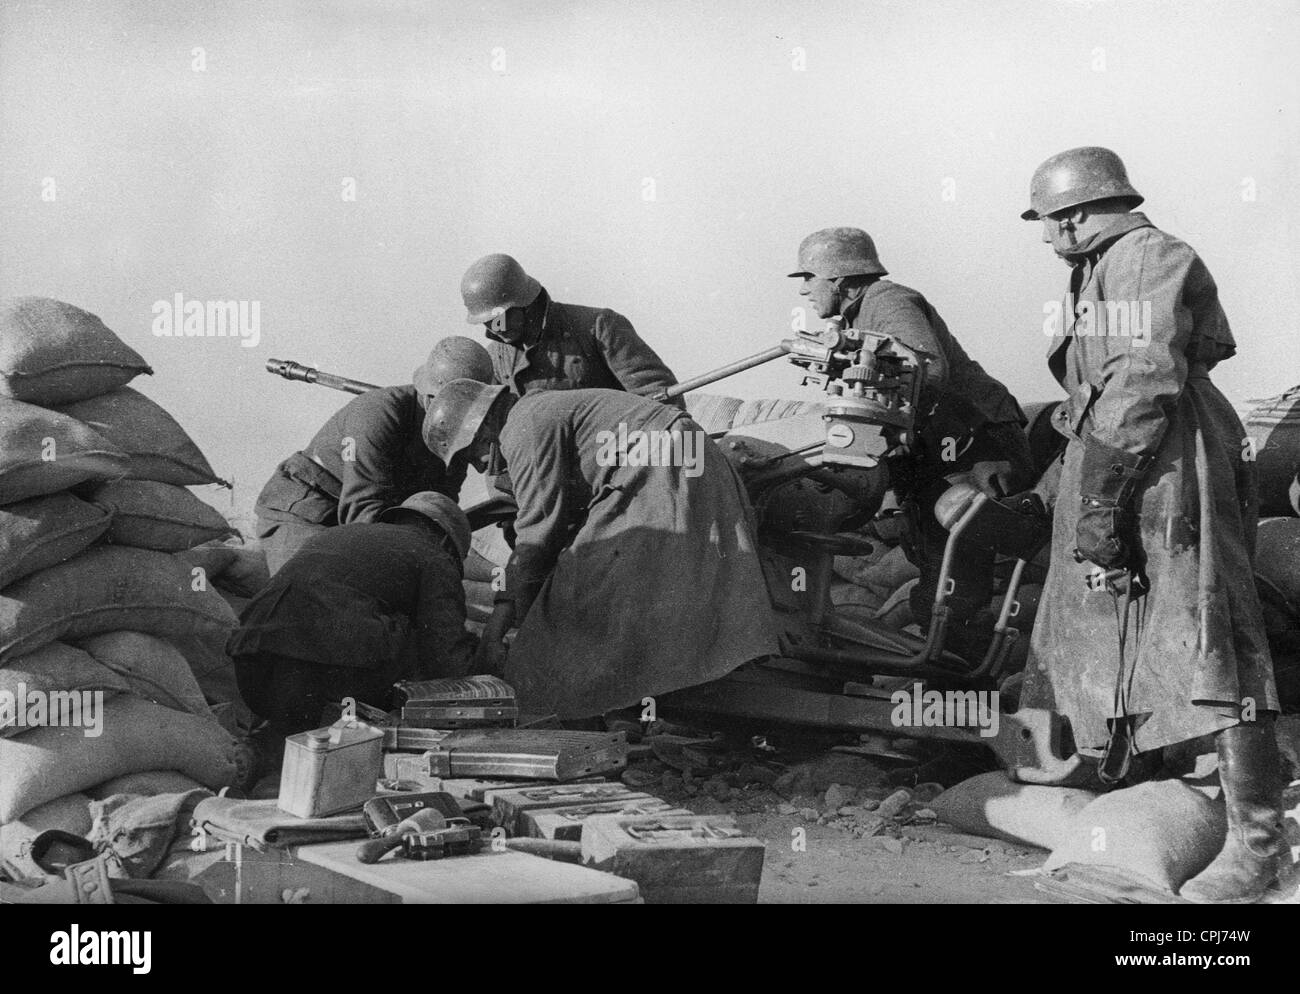 German soldiers in the Spanish Civil War, 1939 - Stock Image